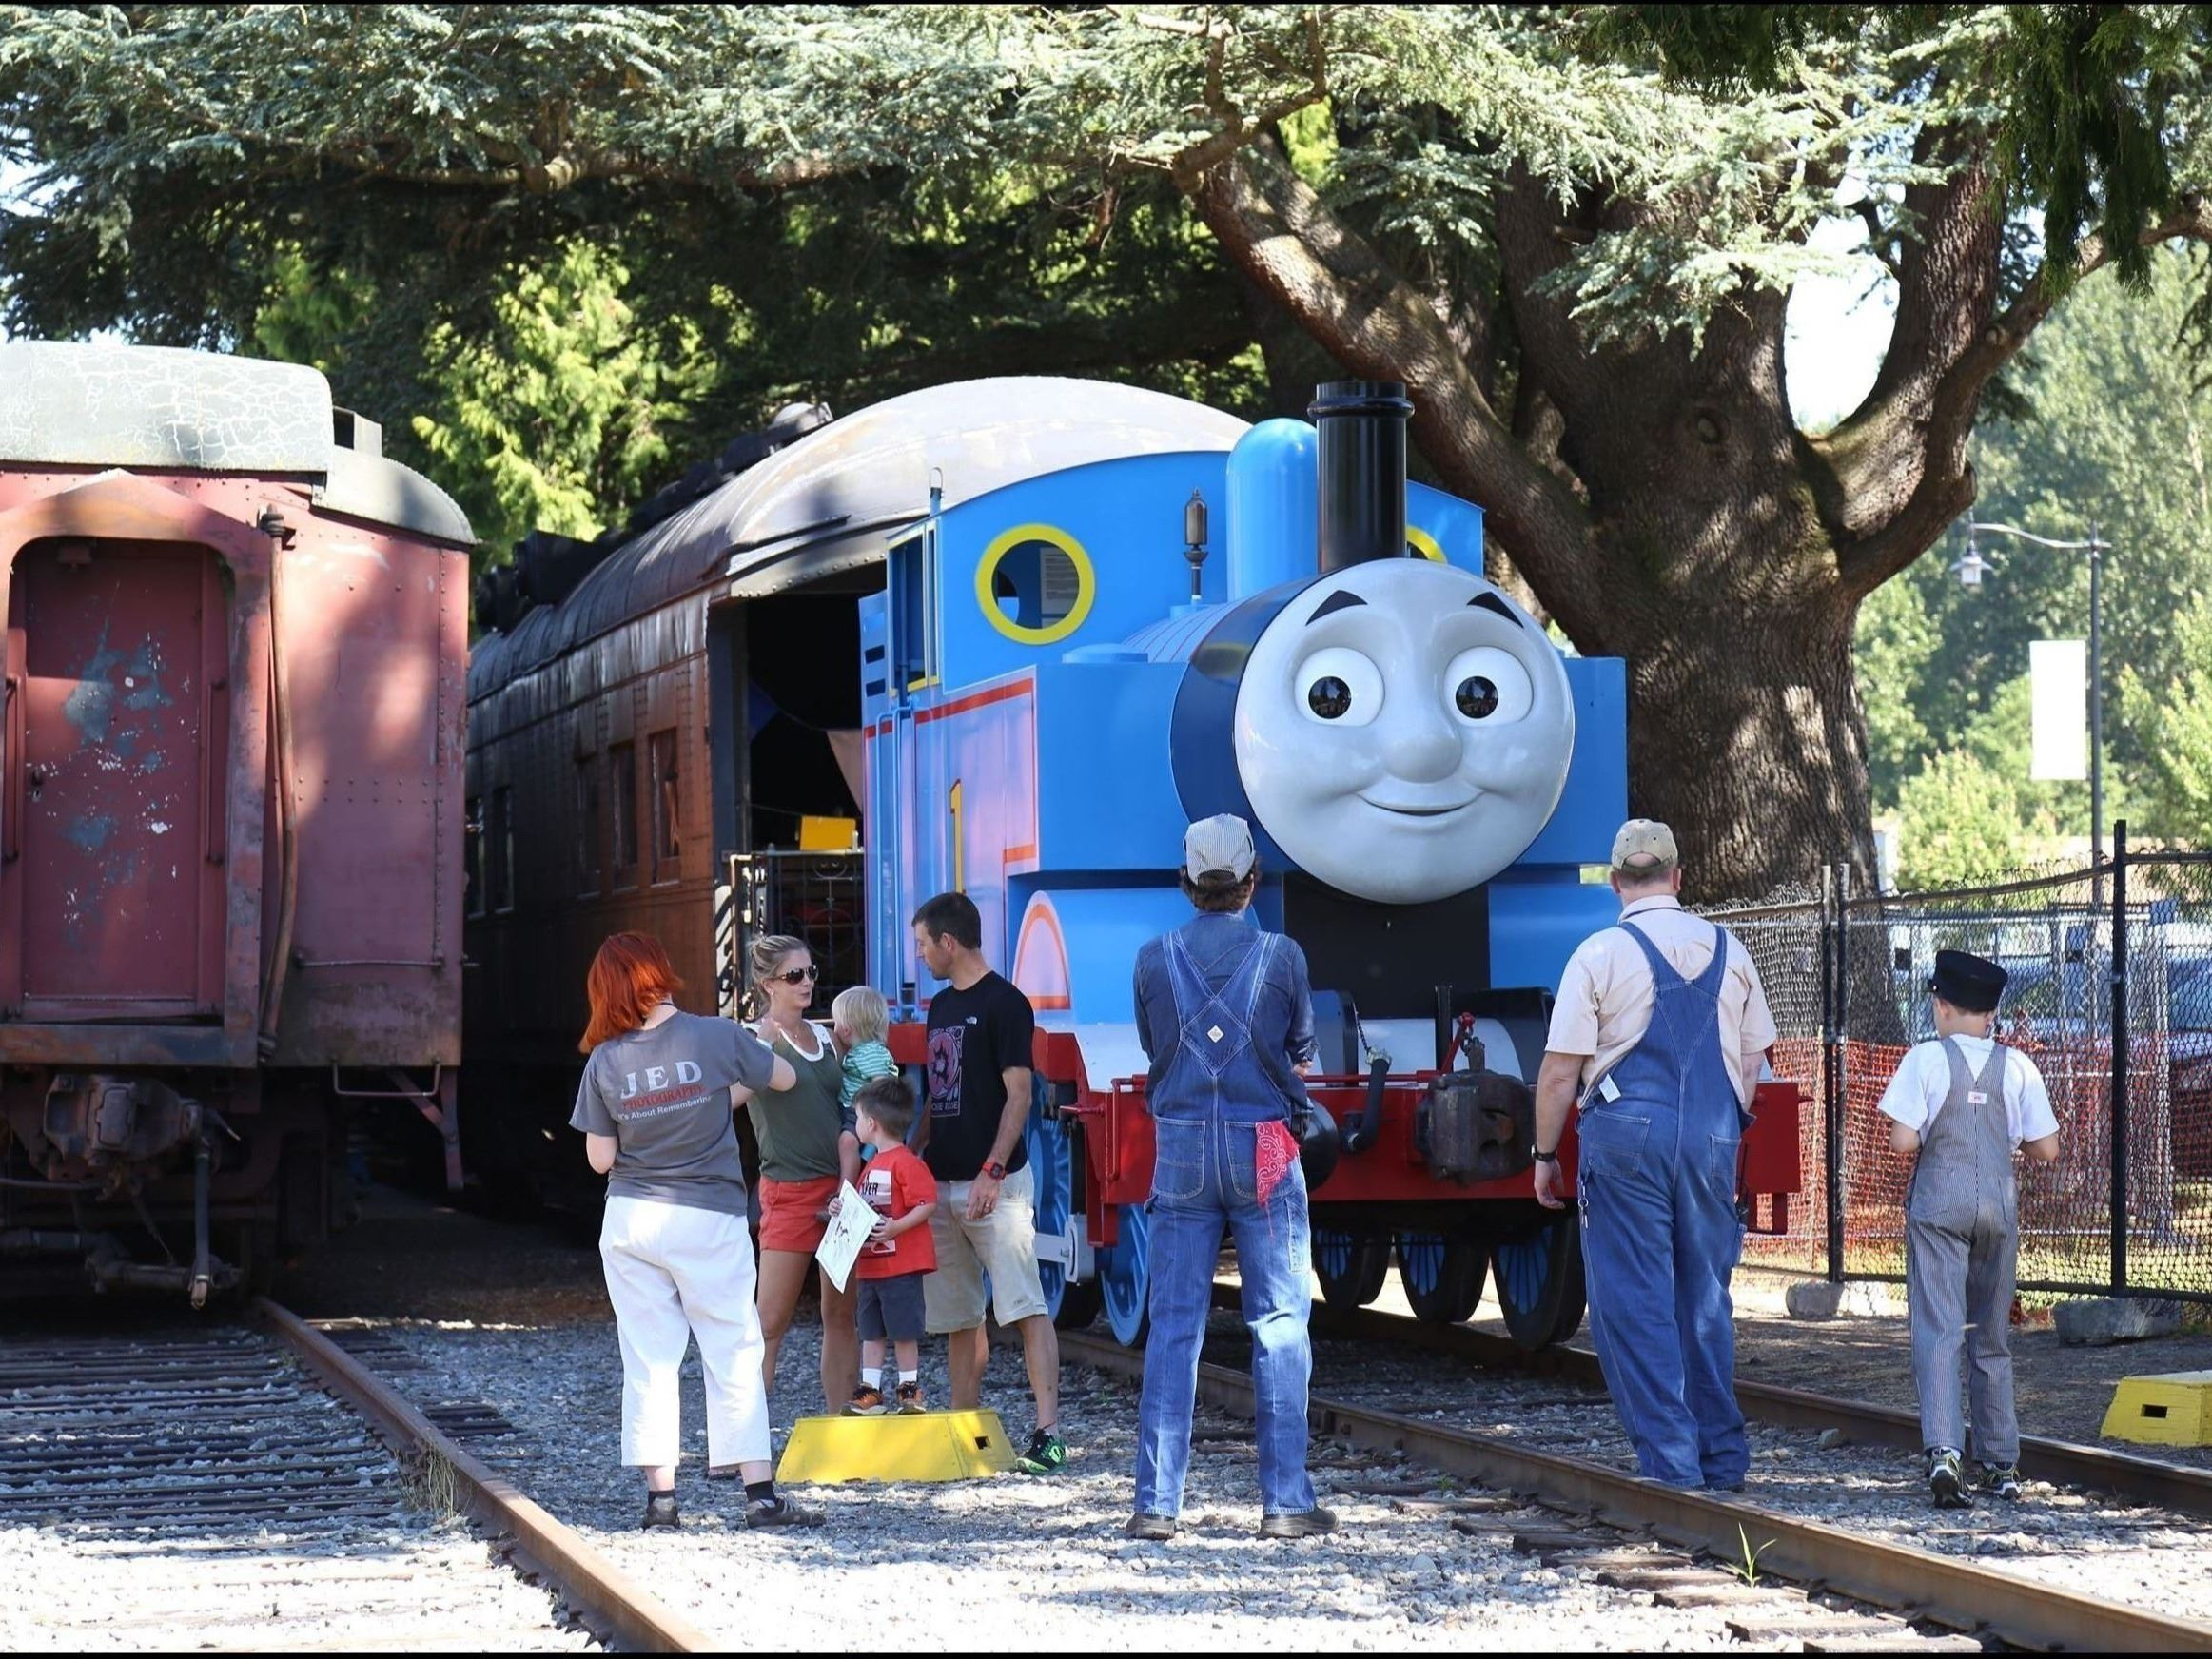 This is a picture of Thomas the Tank Engine from the Children&#39s Television Cartoon.